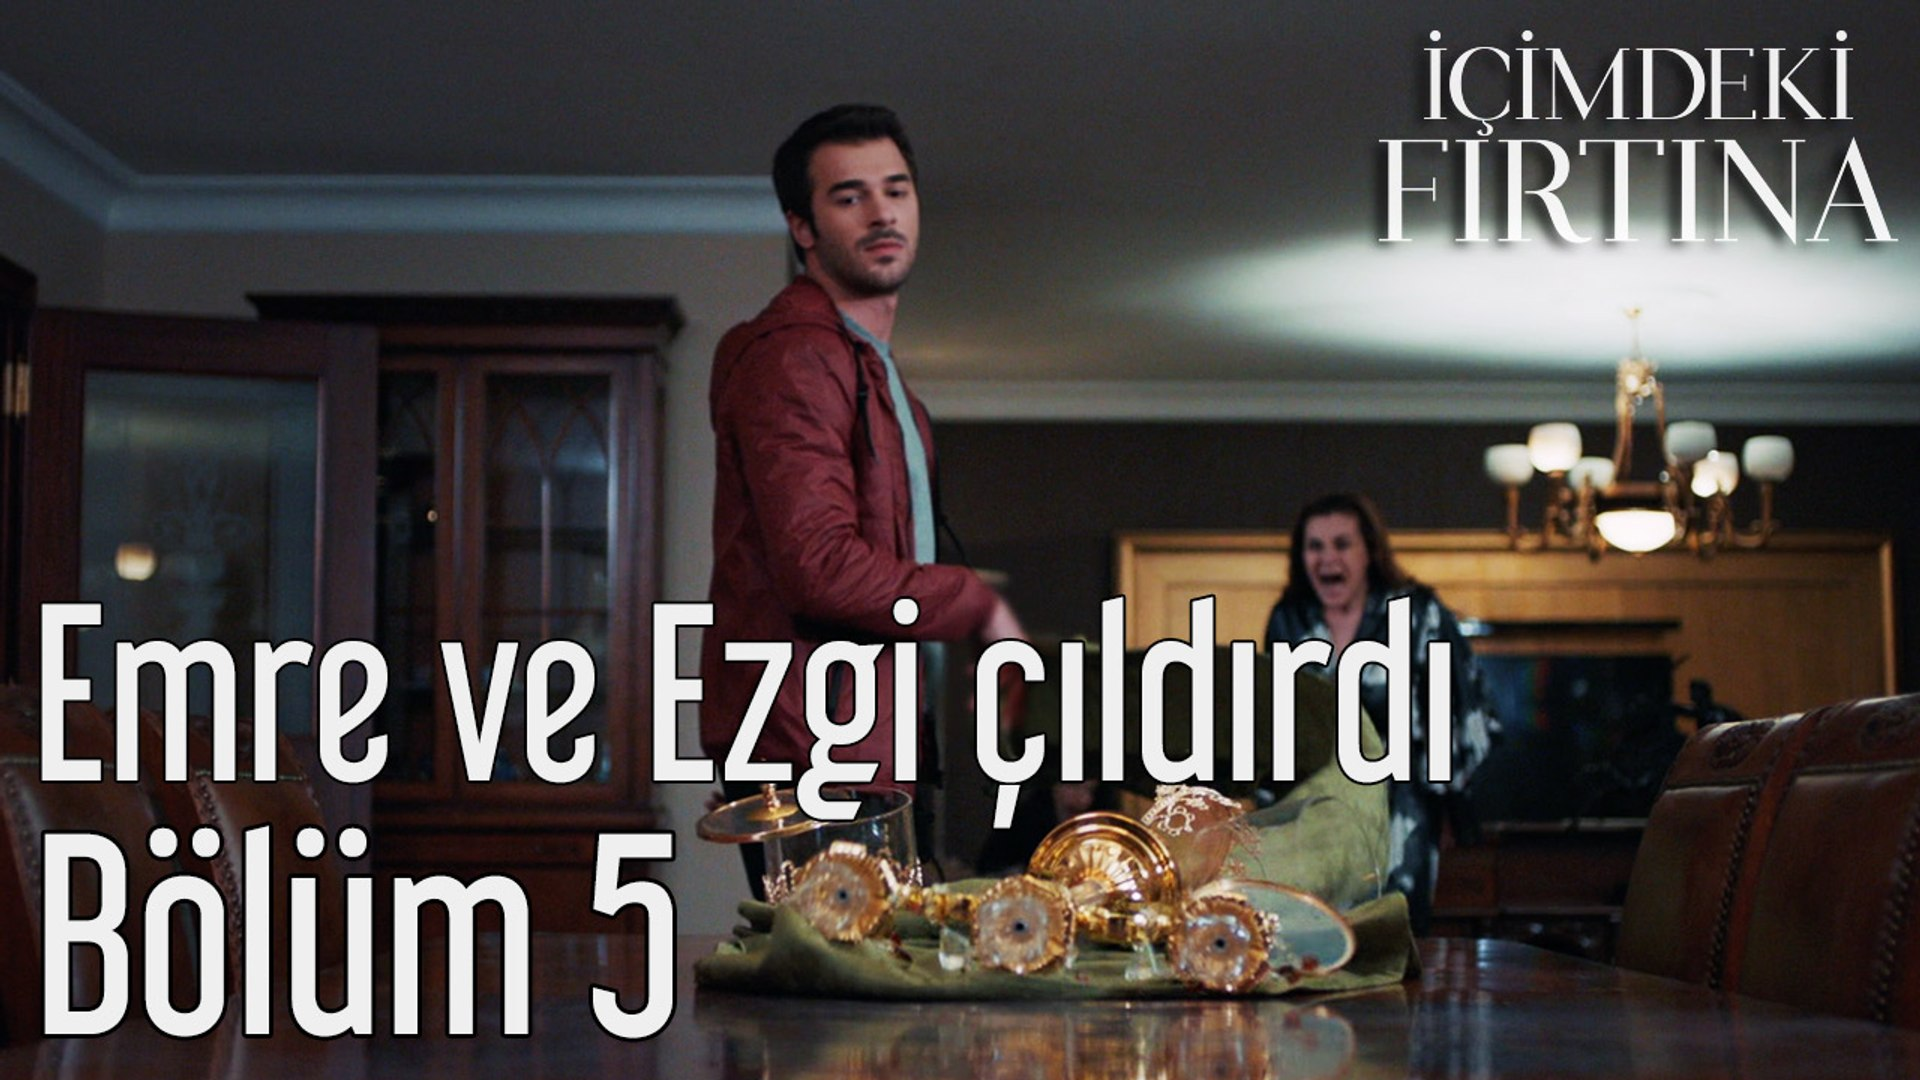 Icimdeki Firtina 5 Bolum Emre Ve Ezgi Cildirdi Dailymotion Video